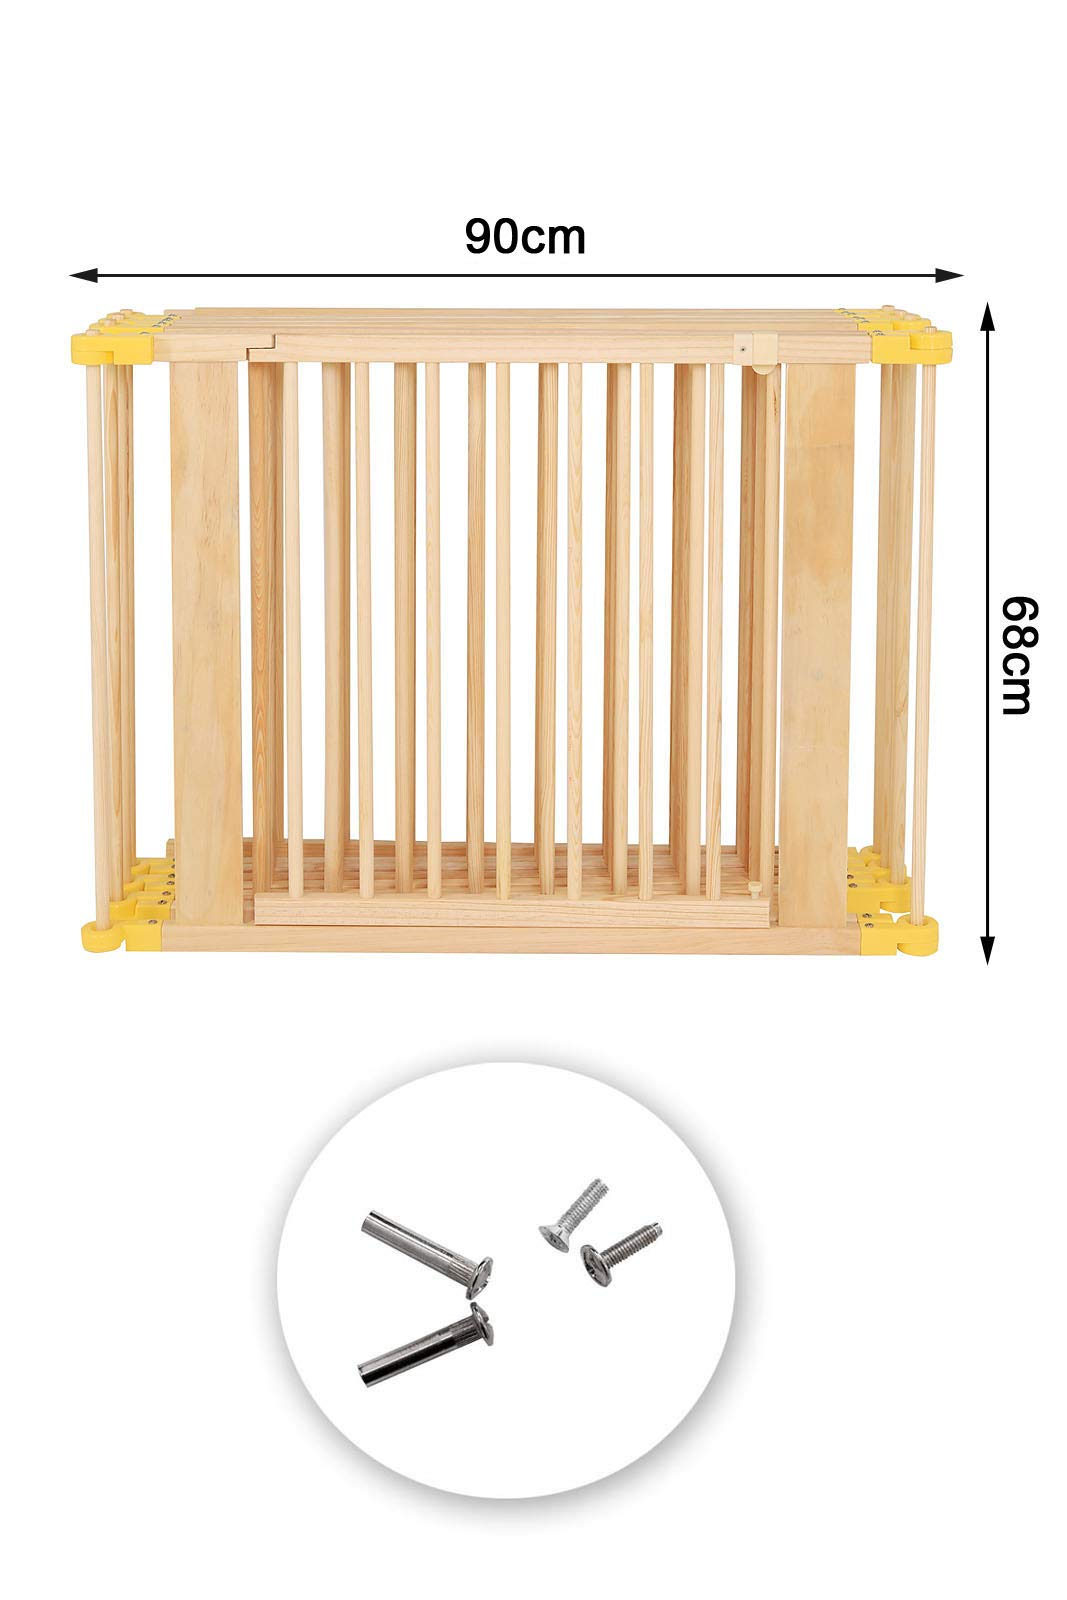 dibea DP00586 Baby Child Playpen, Wood, 270° Foldable incl. Door, 6 Panels Each 90x68cm dibea Wooden playpen with door, height 68 cm, 6 elements (including 1 door) each 90 x 68 cm (L, H). Distance between the single bars about 7, 5 cm 270 ° foldable, lockable form, flexibly usable as a playpen, protective grid, room divider or stair guard Rubber coating under the feet, so that the grid can not be moved by the baby 6